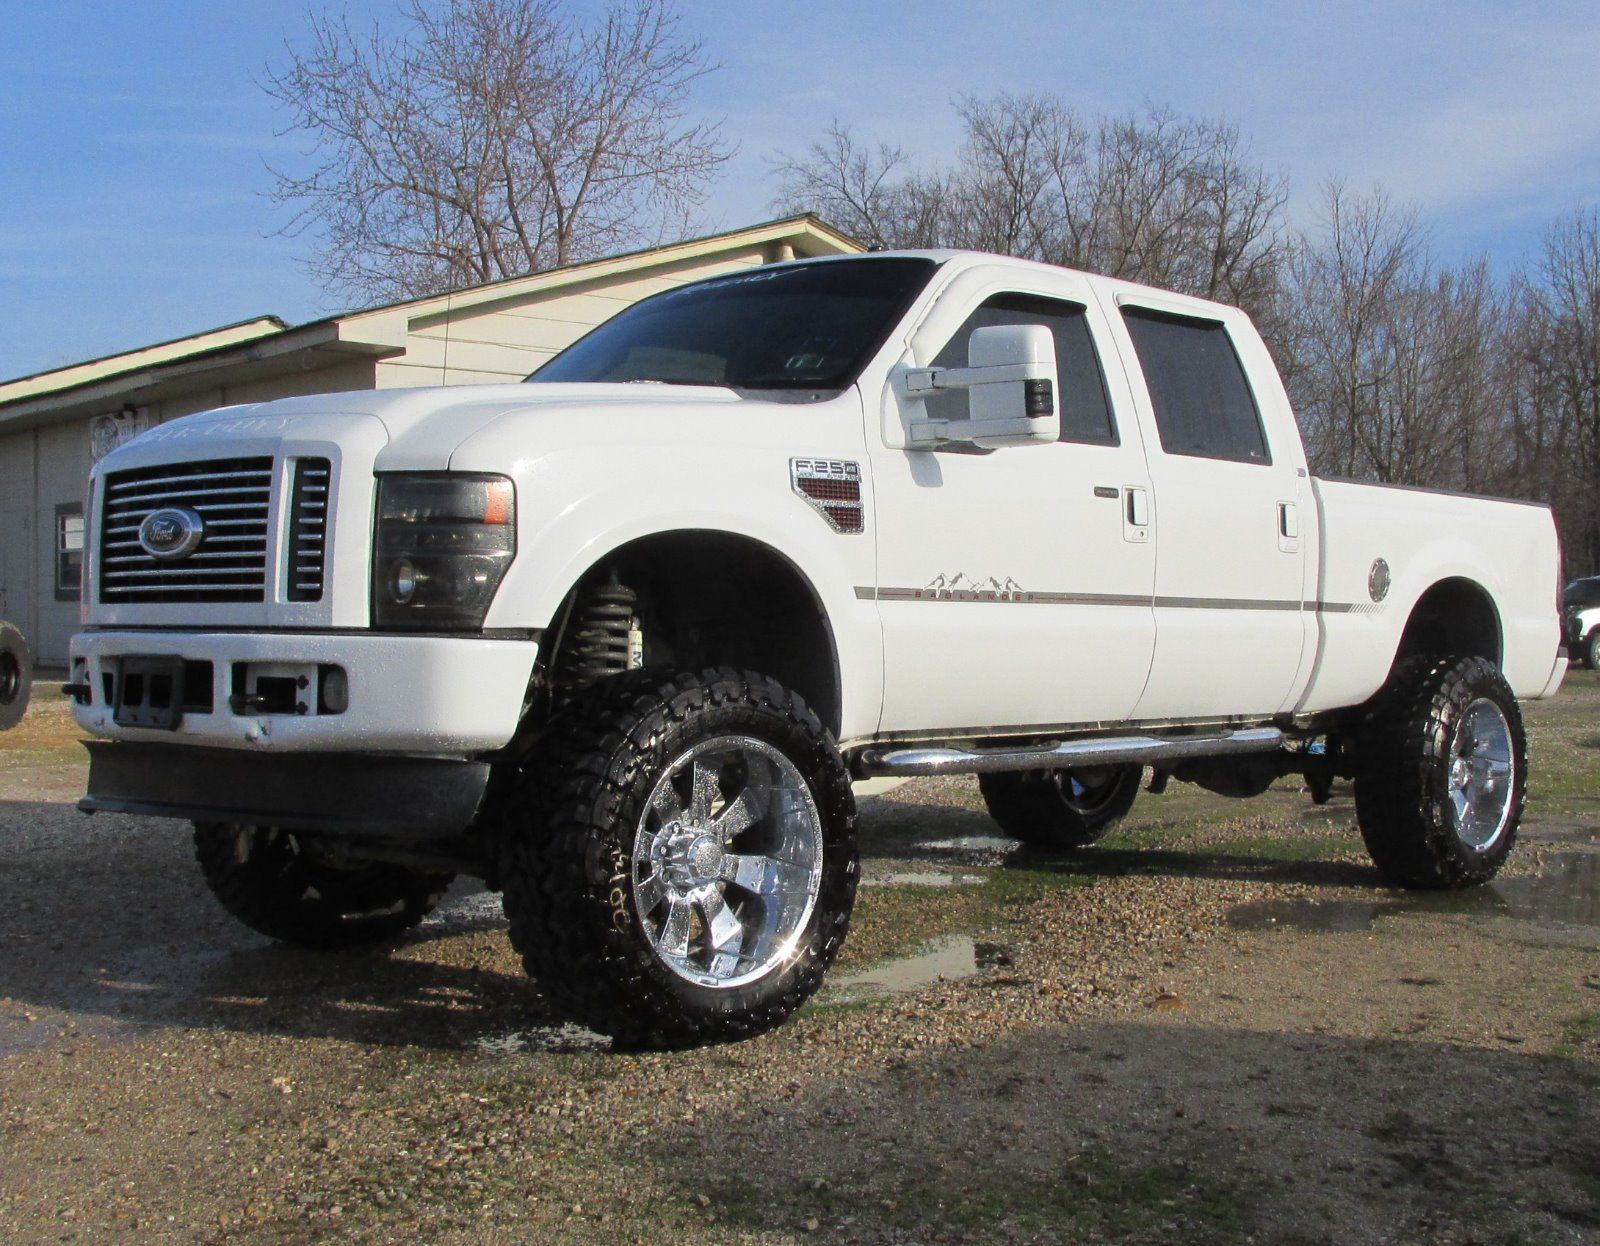 2008 ford f250 super duty 4 4 regency badlander salvage rebuildable lariat for sale. Black Bedroom Furniture Sets. Home Design Ideas